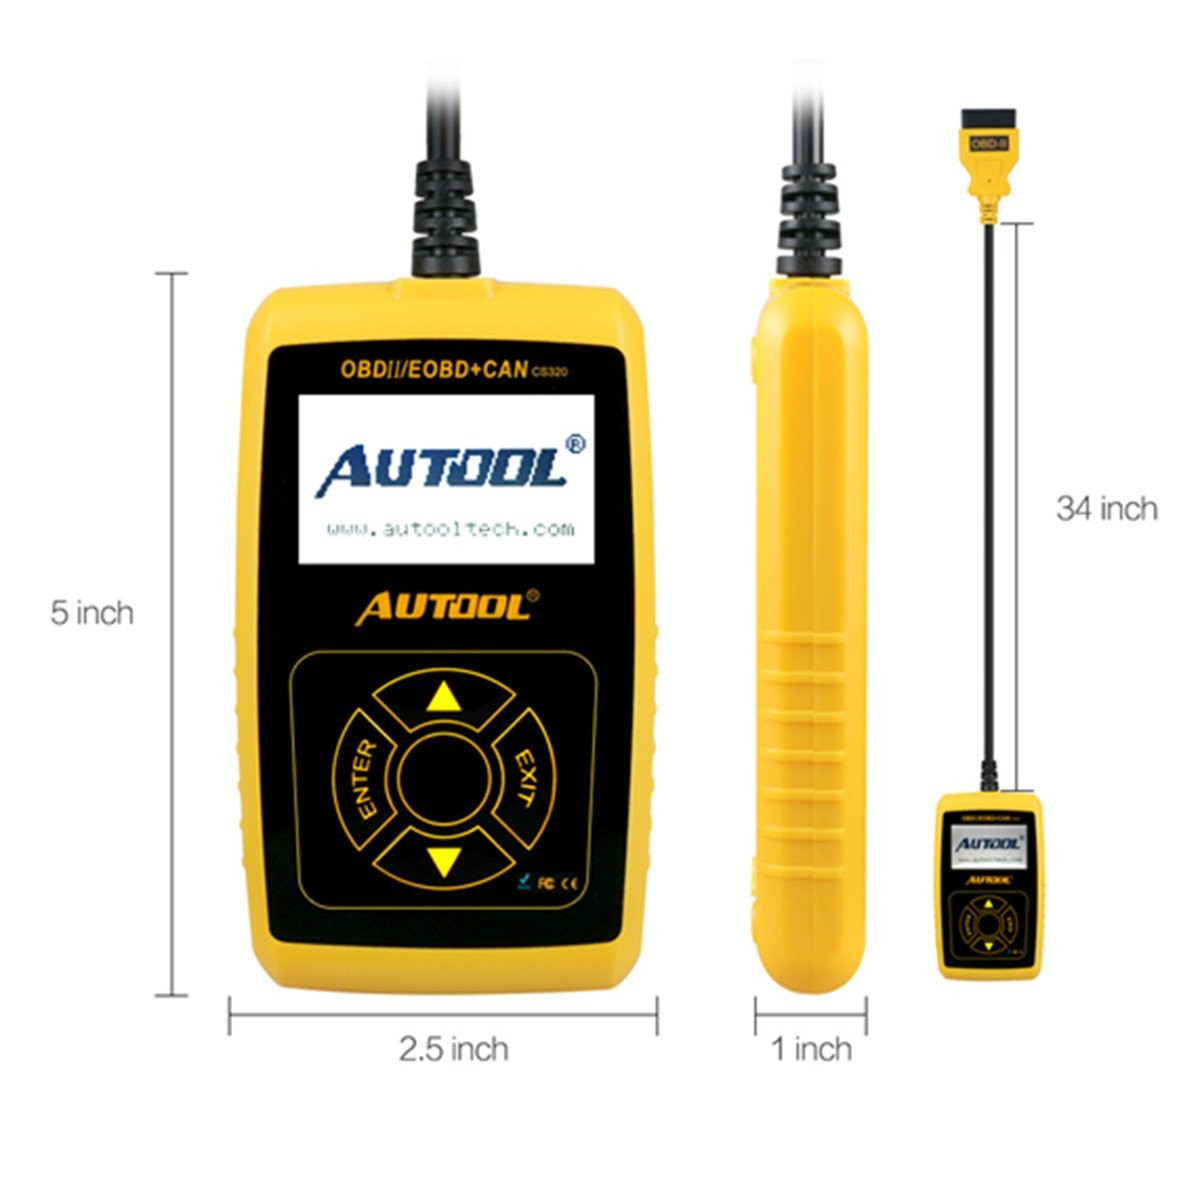 AUTOOL CS320 OBDII Car Vehicle Code Scanner Engine Fault Code Reader Auto Diagnostic Scan Tool